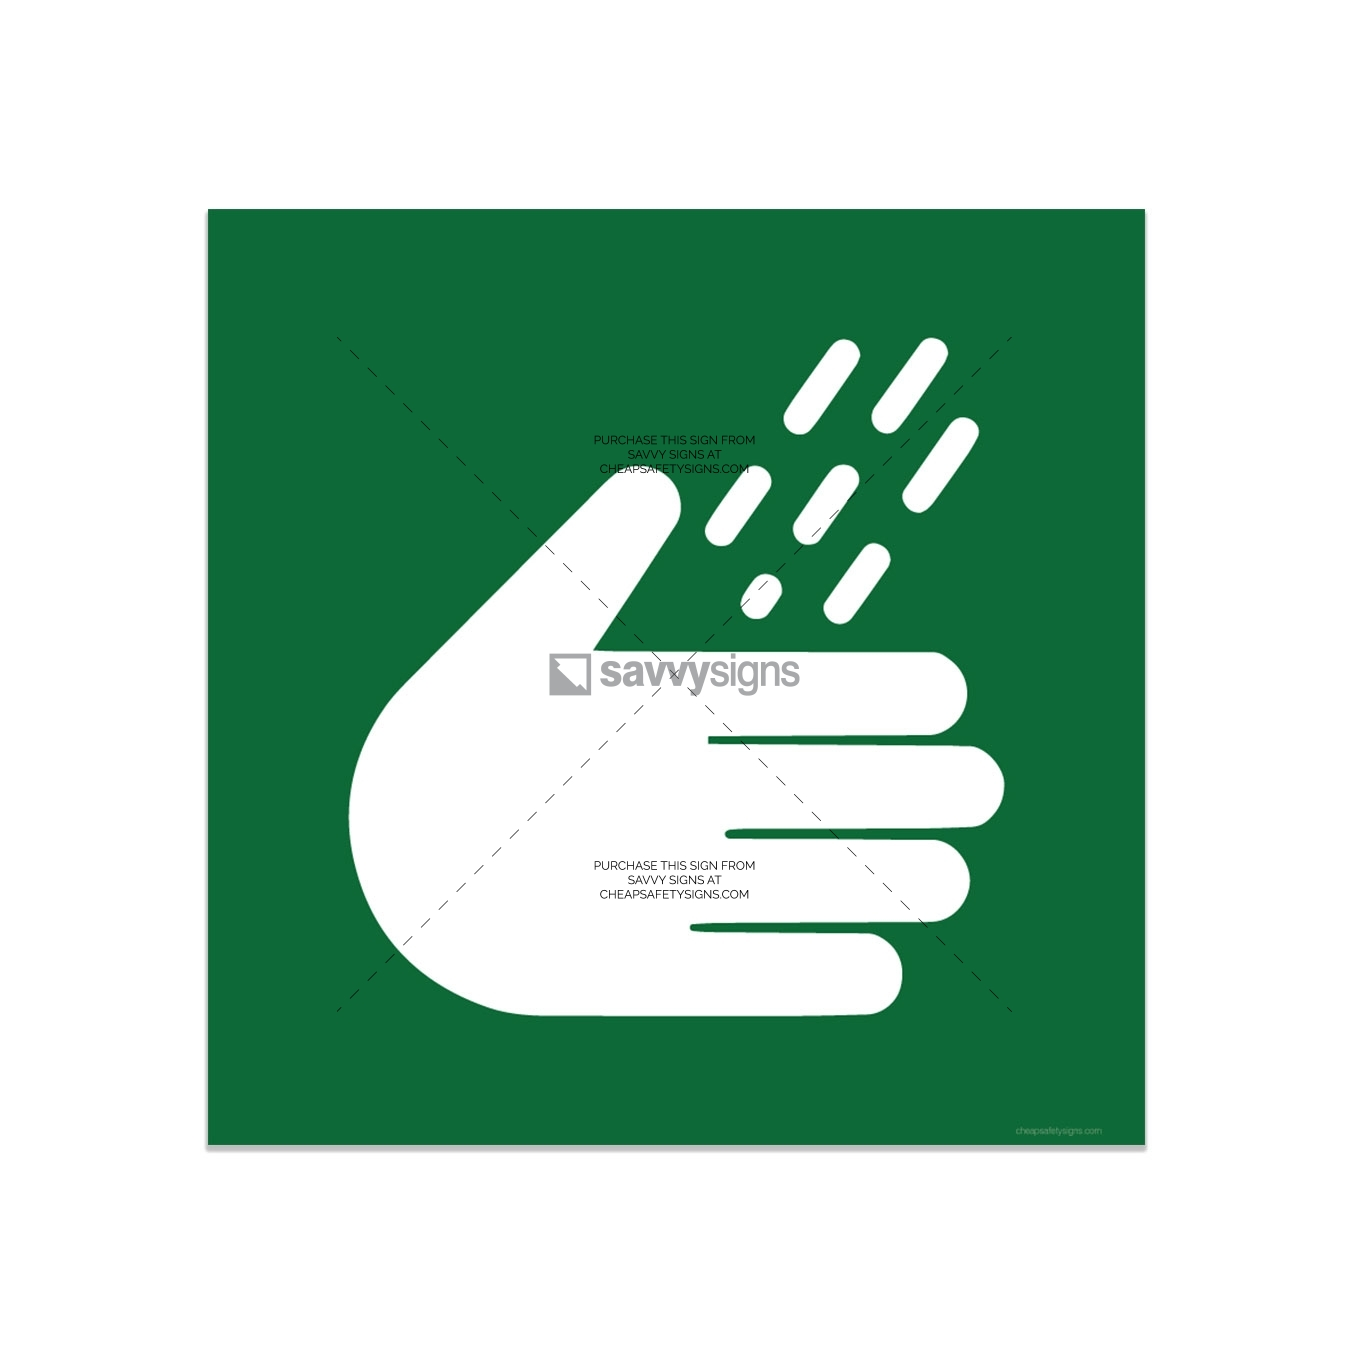 SSEME3067-EMERGENCY-Pictogram-Workplace-Safety-Signs_Savvy-Signs_v3